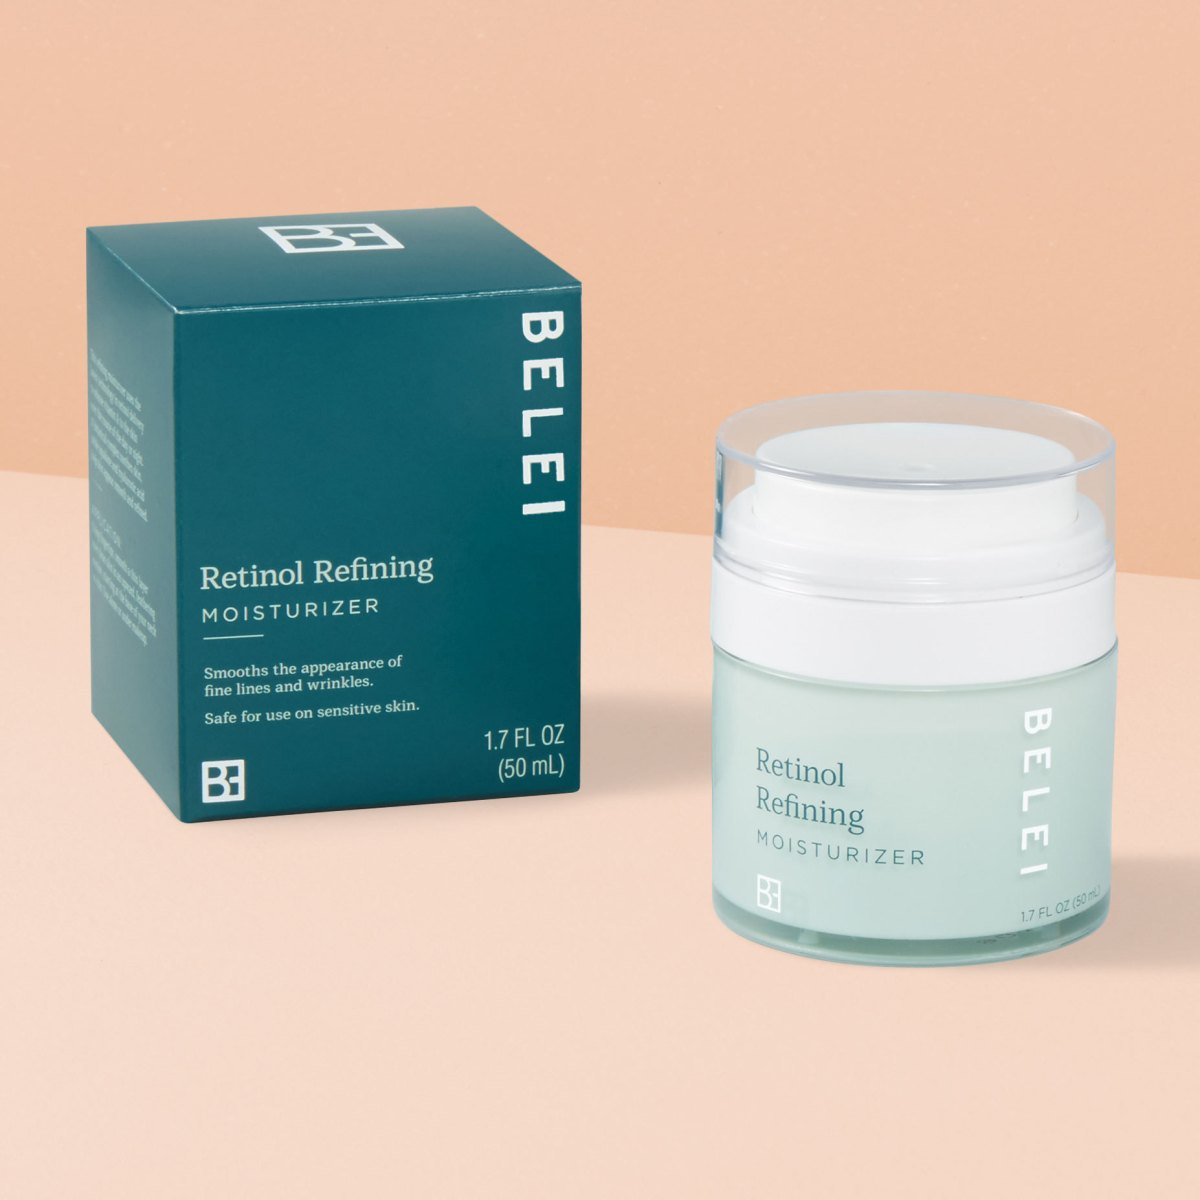 Amazon Launches New Affordable Skincare Line Called 'Belei'